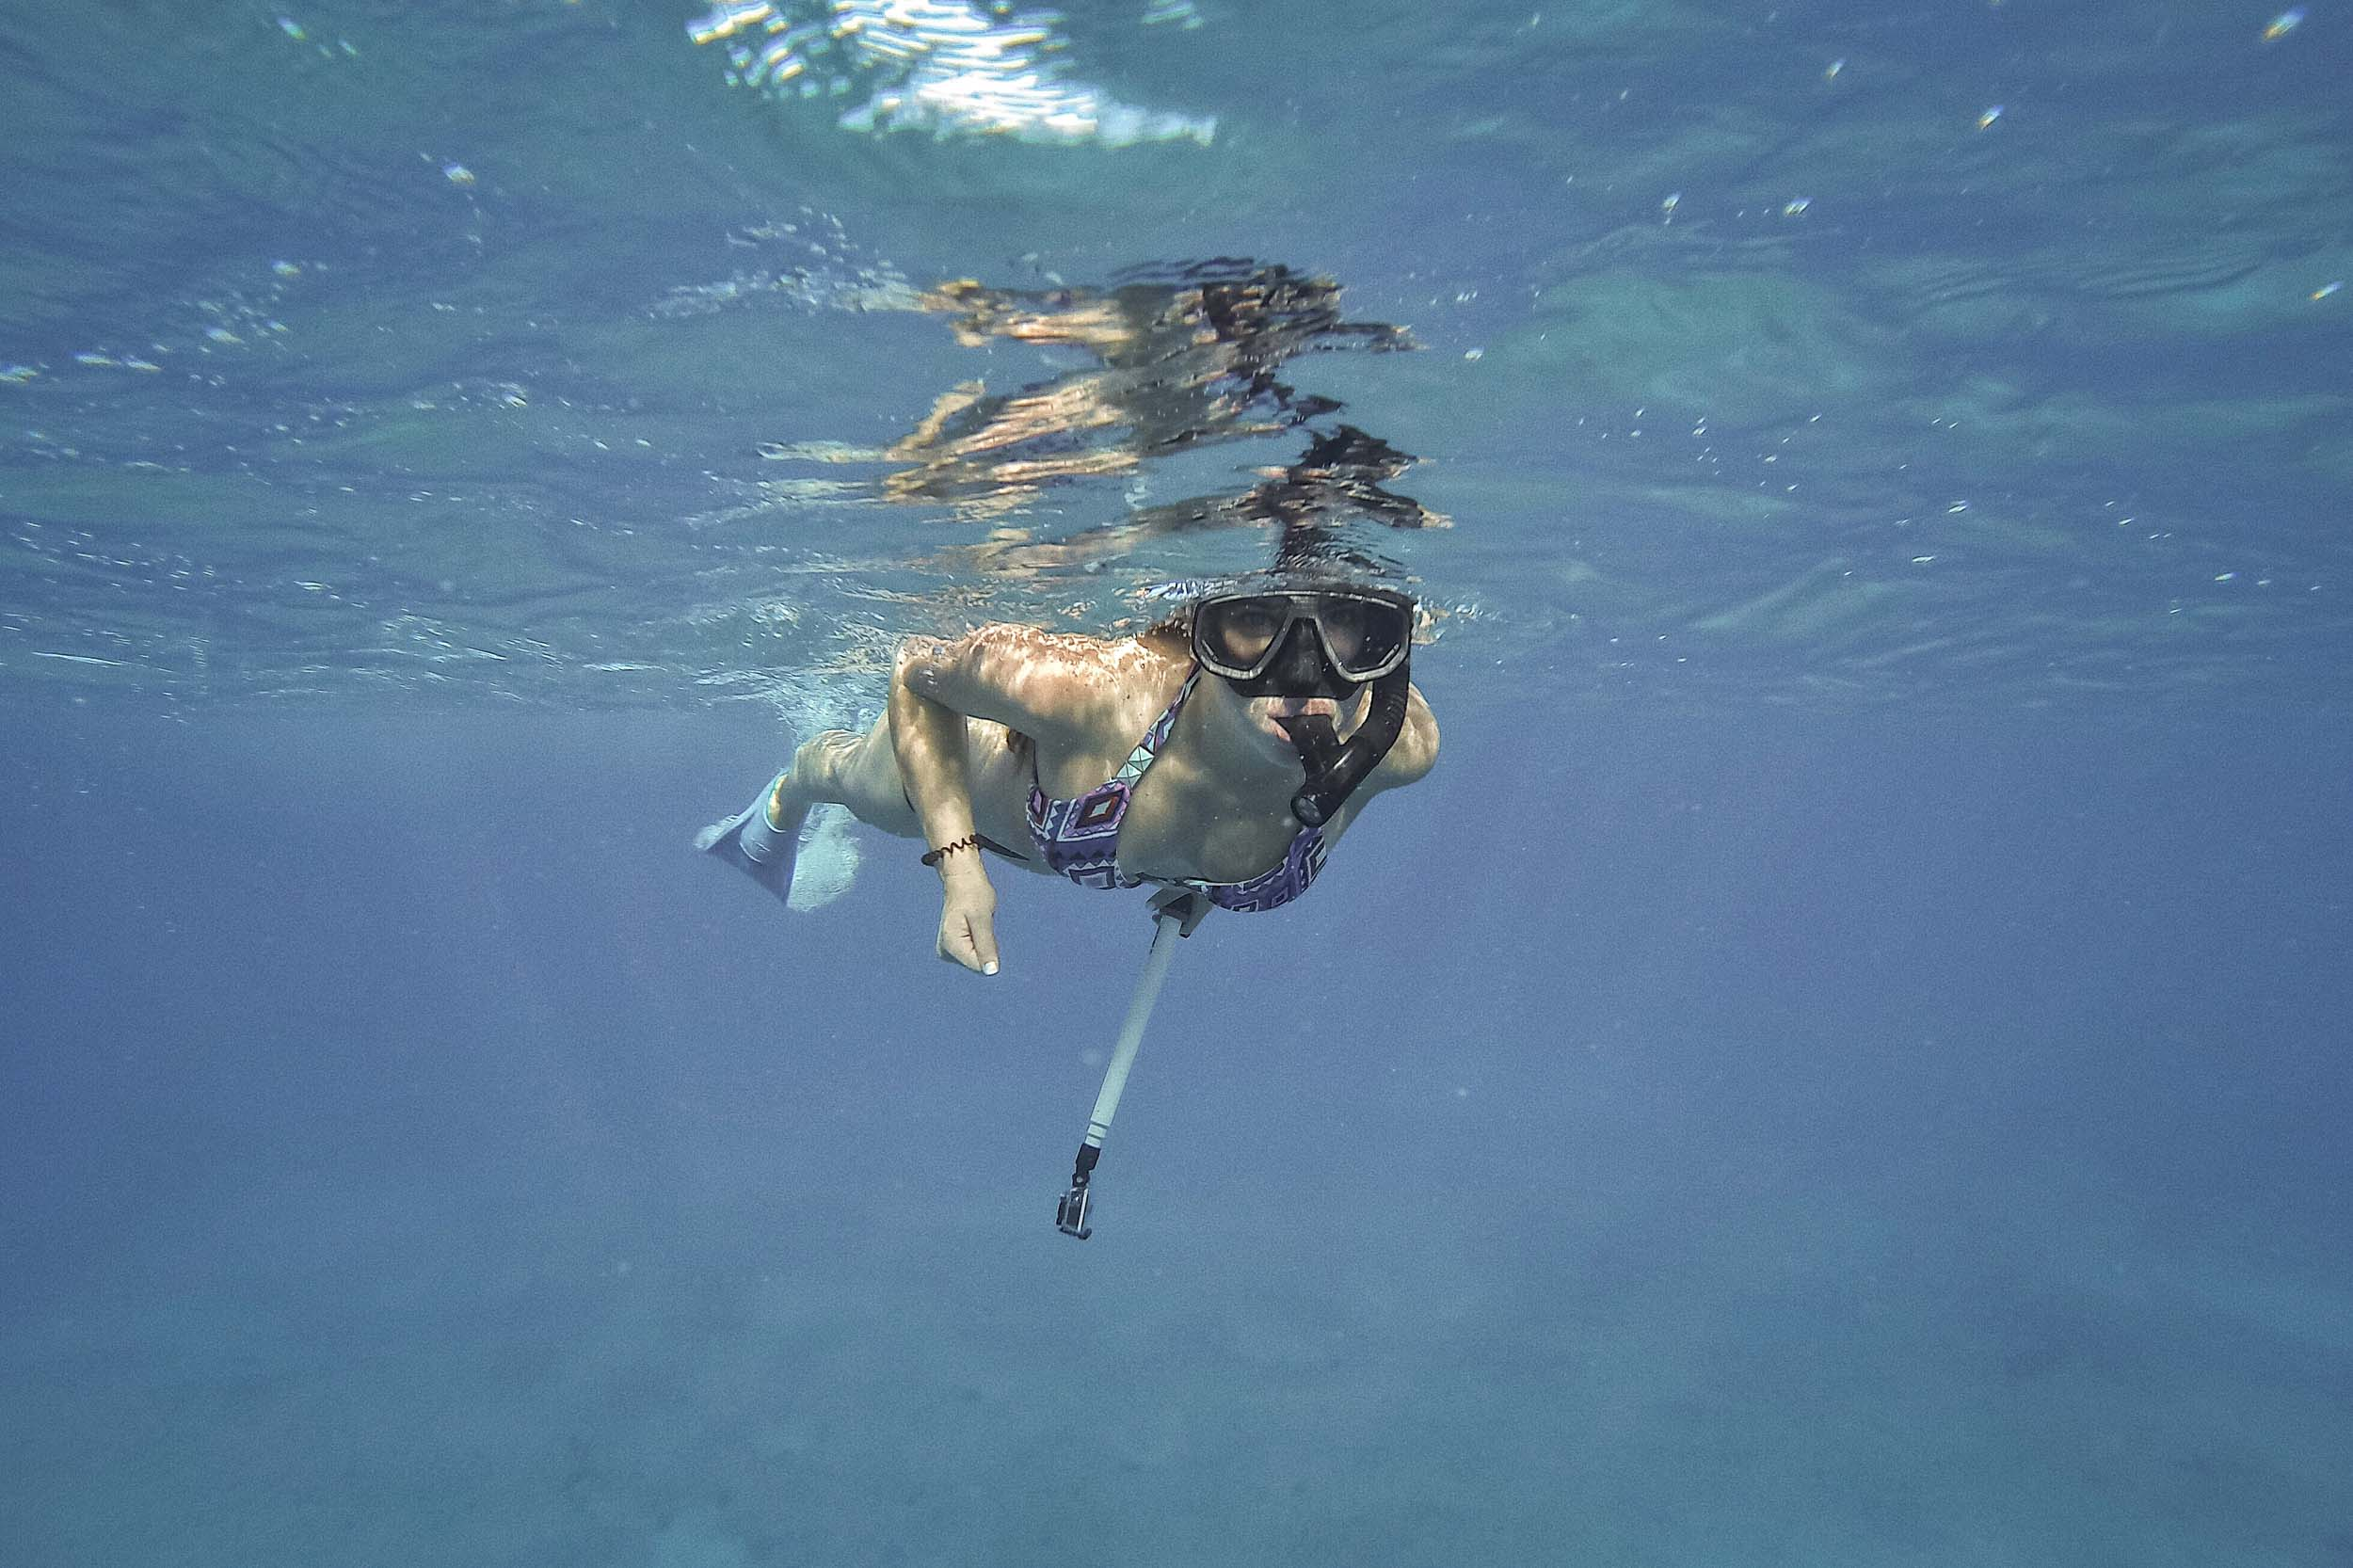 Snorkeling in Hawaii, looking for dolphins!